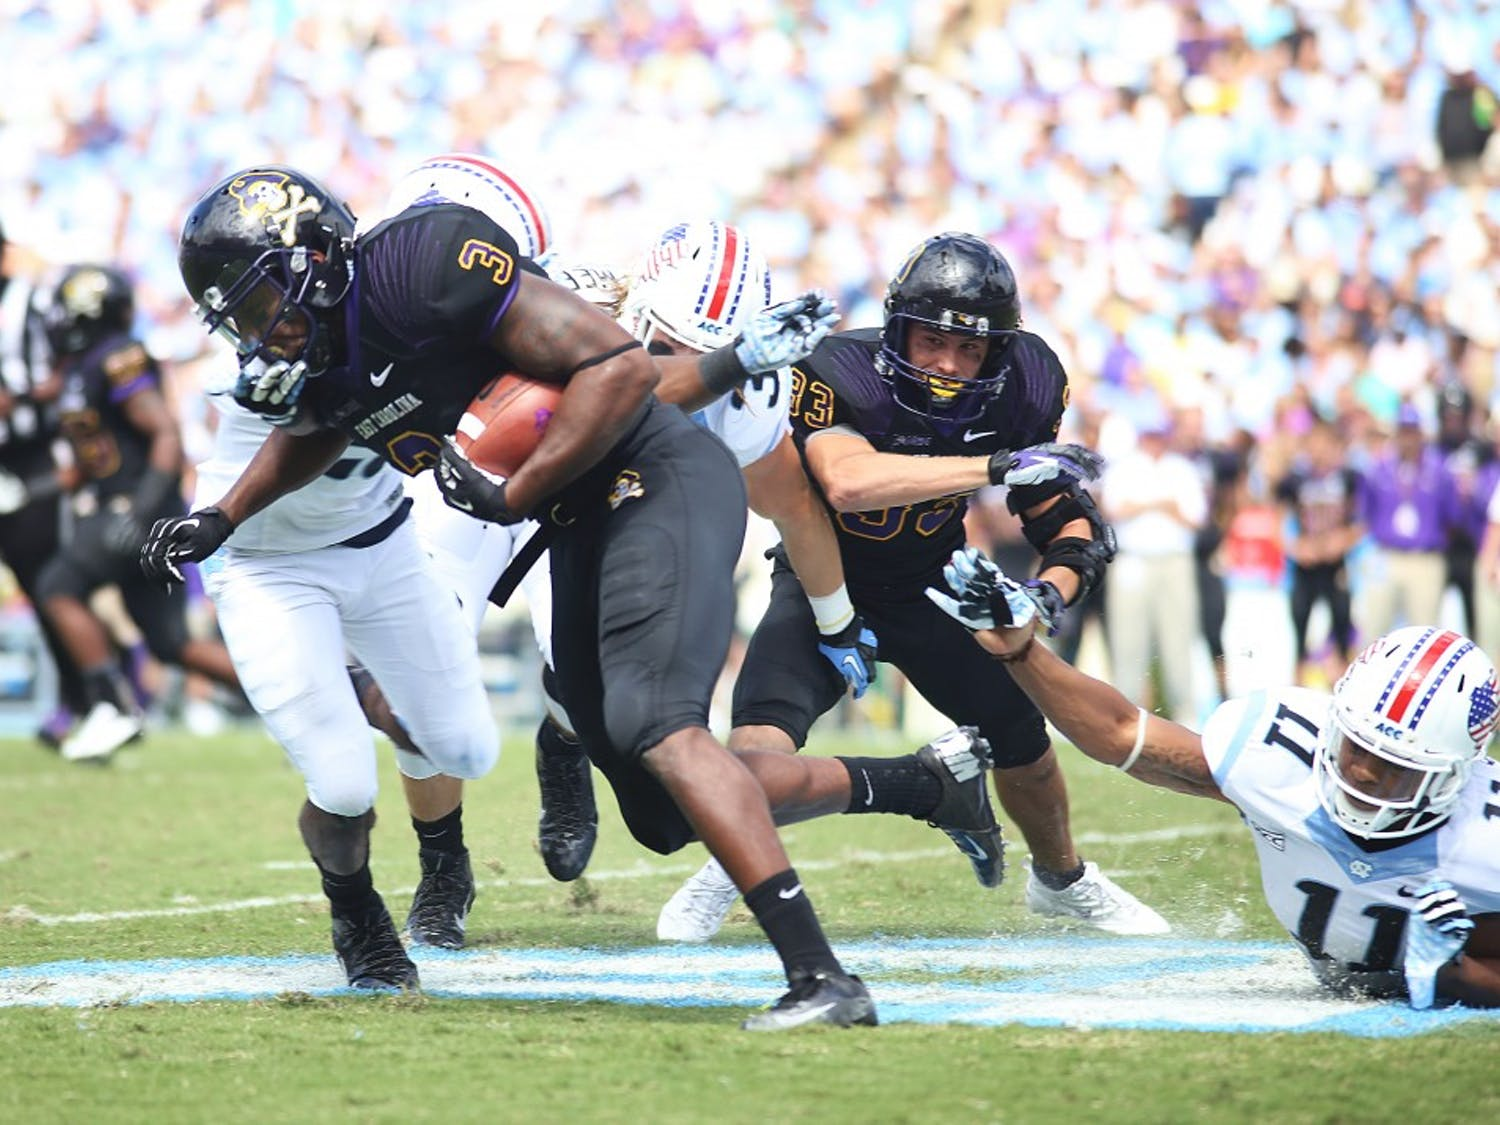 ECU outside receiver Lance Ray (3) breaks the tackle from UNC's defense.